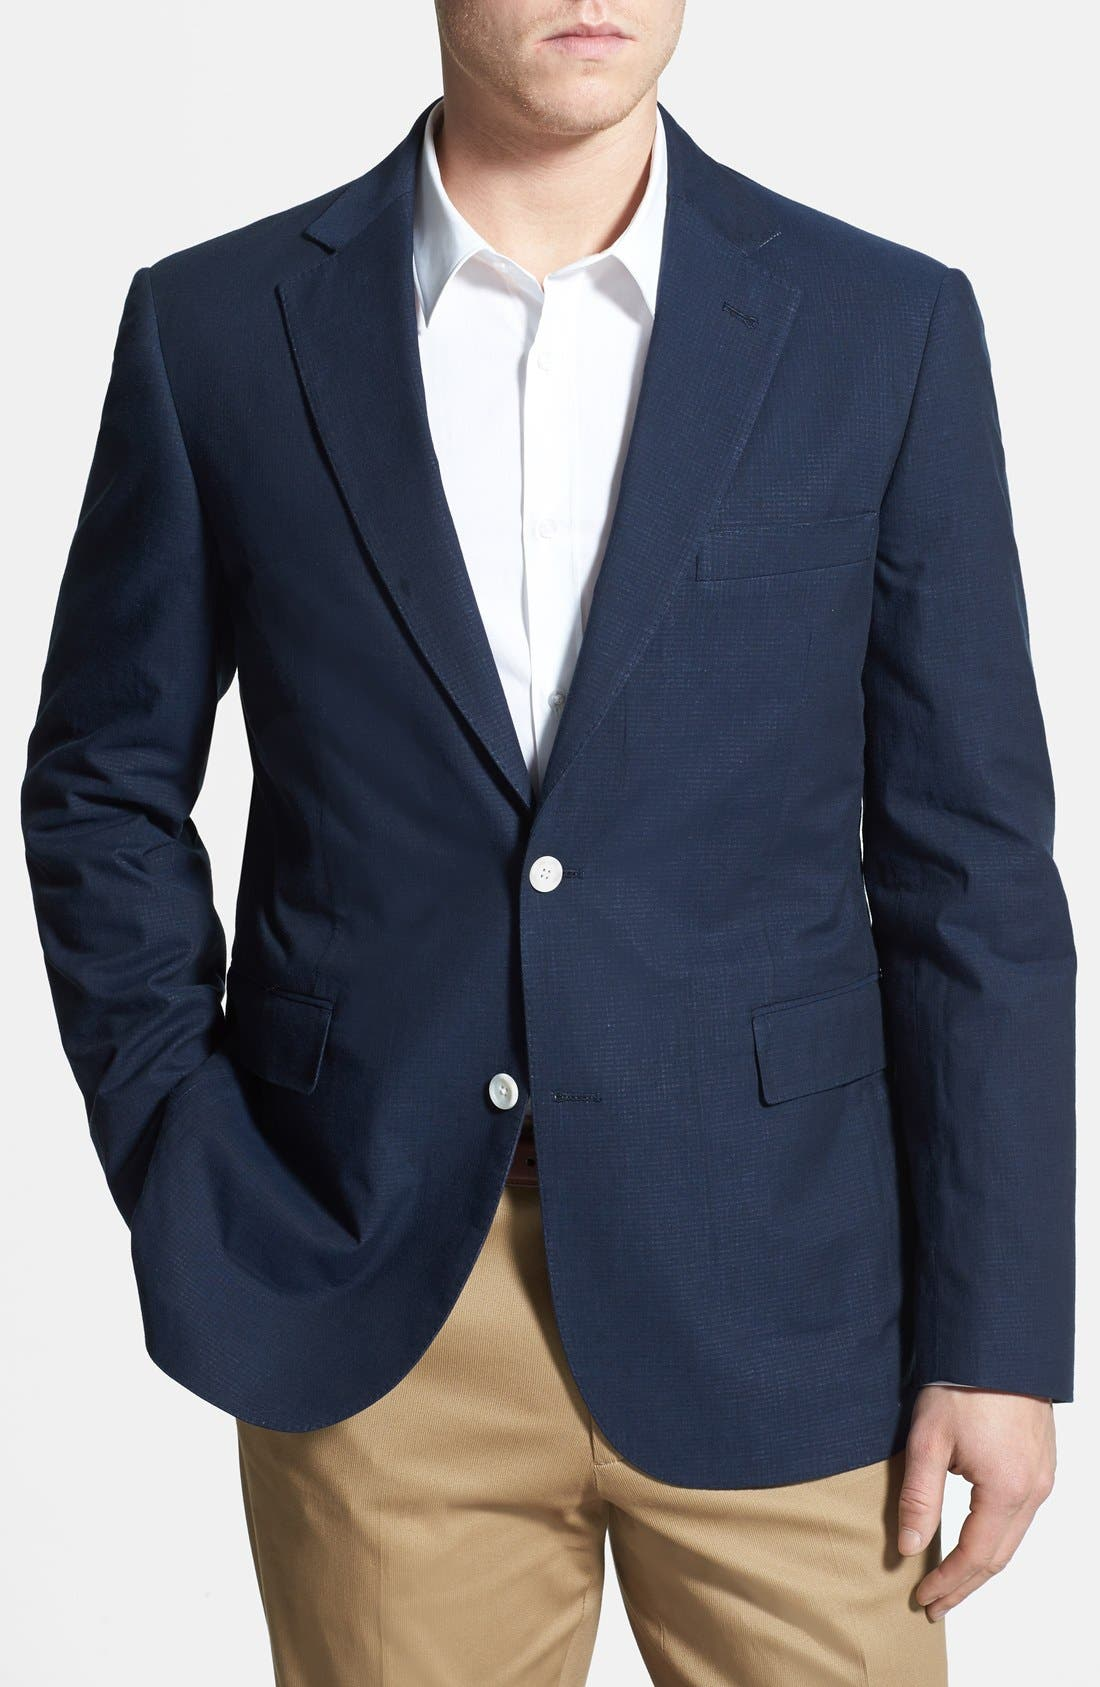 Main Image - 2BSV NAVY GINGHAM SPORTCOAT